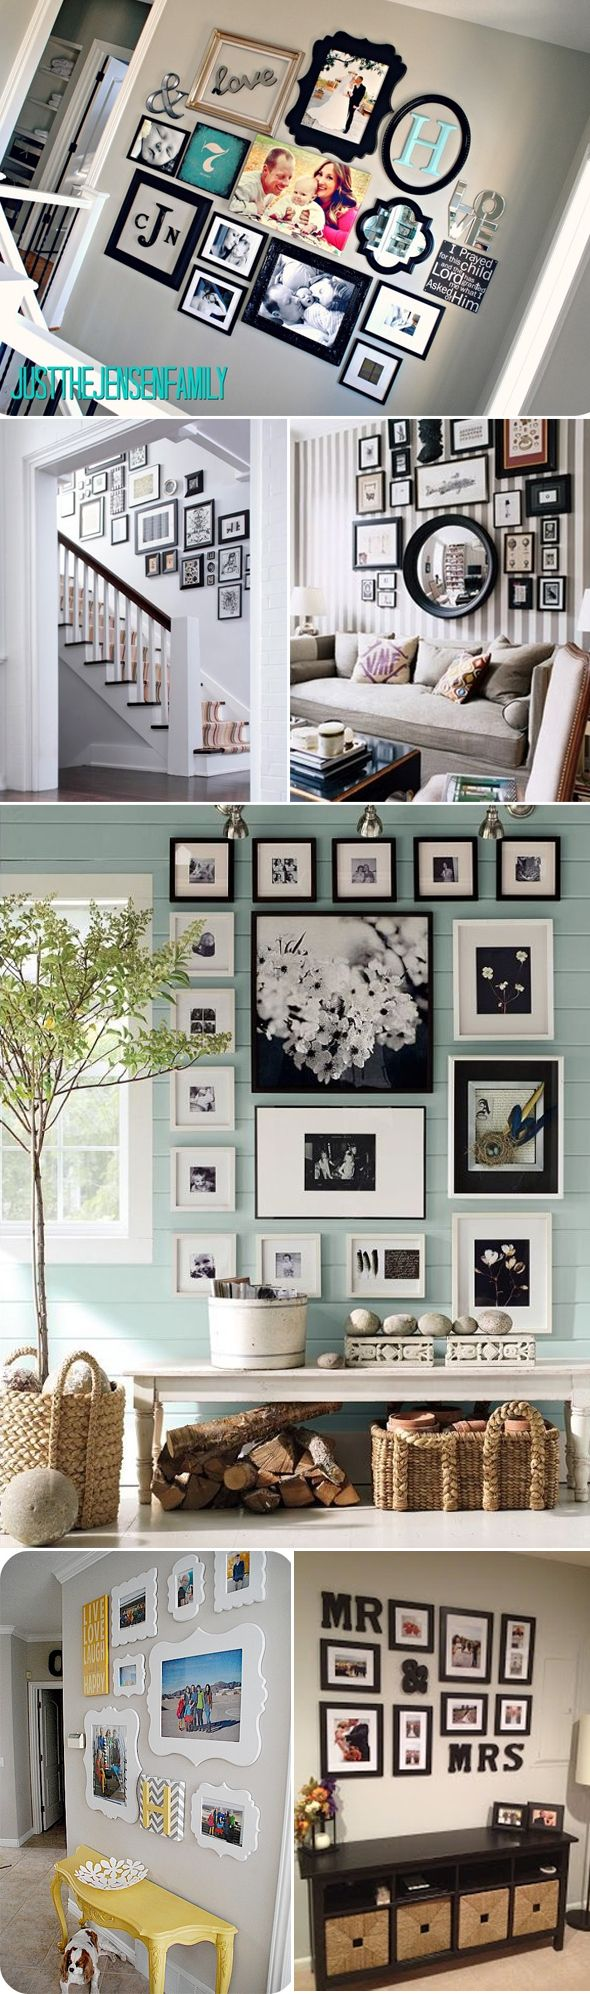 10 tips for creating a collected gallery wall collage ideas 10 tips for creating a collected gallery wall collage ideas wall collage and gallery wall jeuxipadfo Gallery